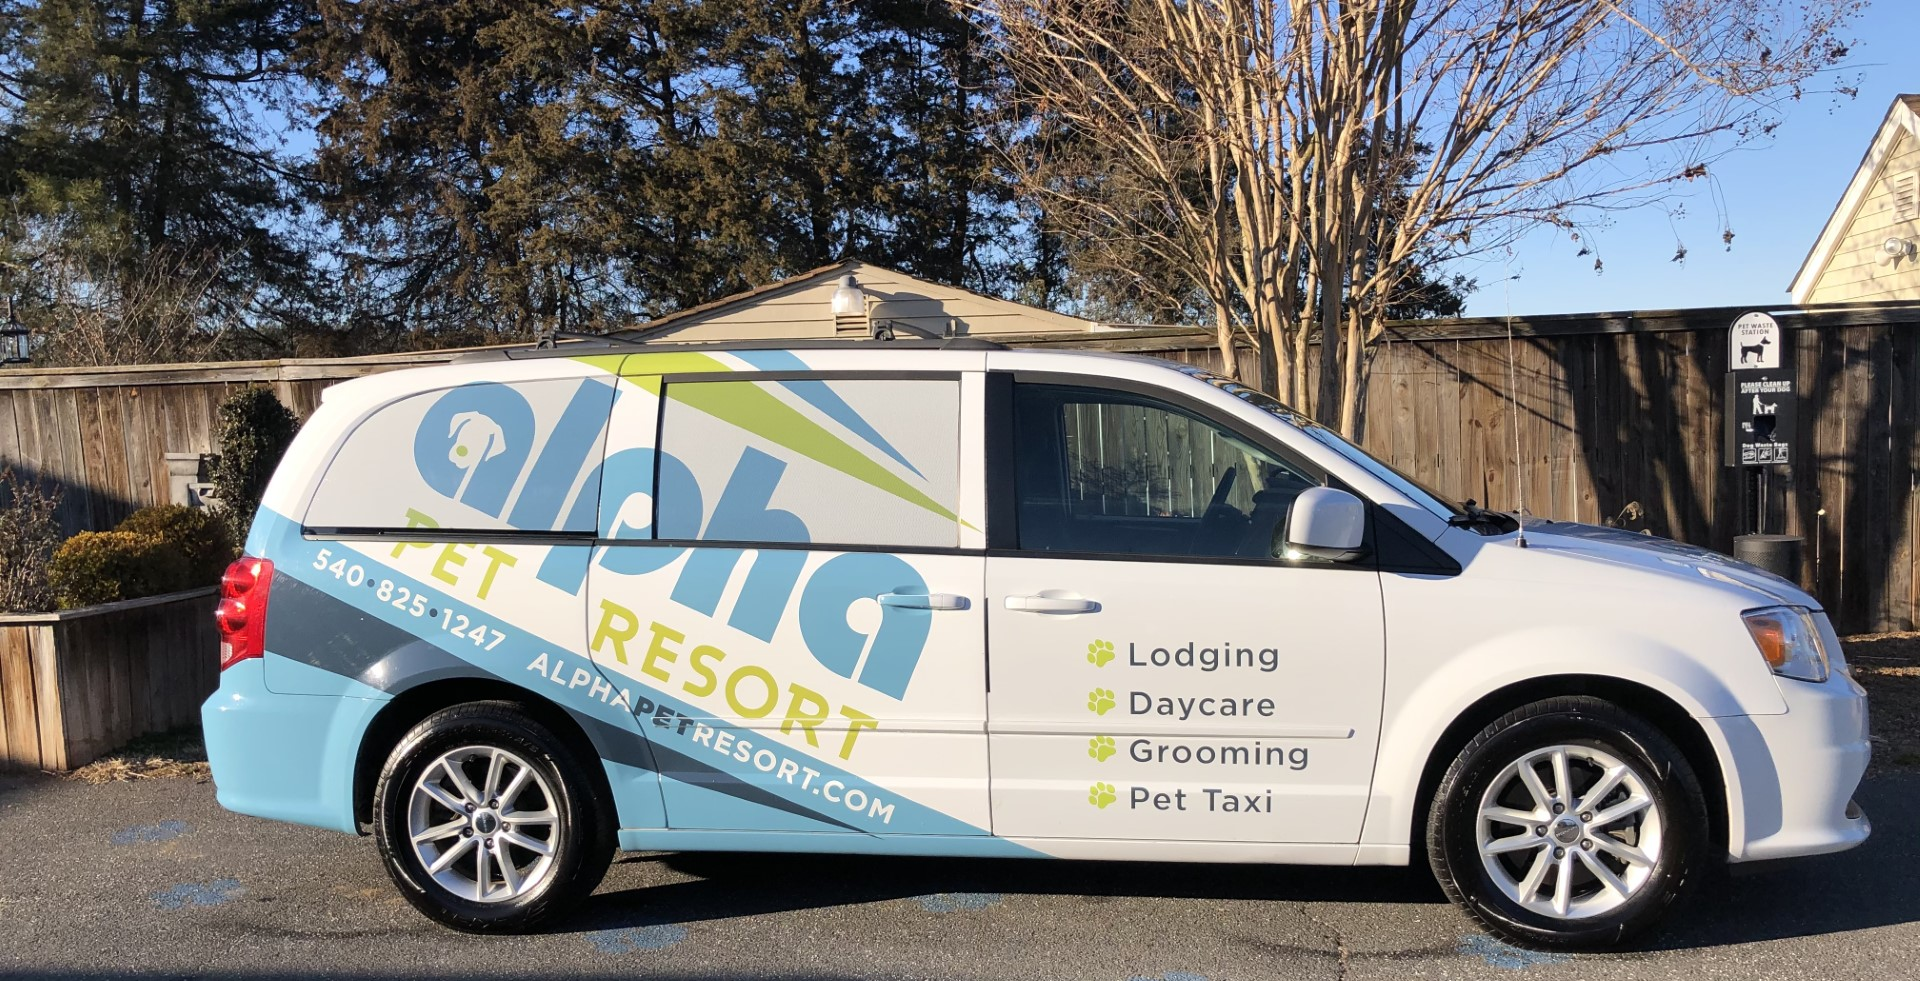 Alpha Pet Resort Van